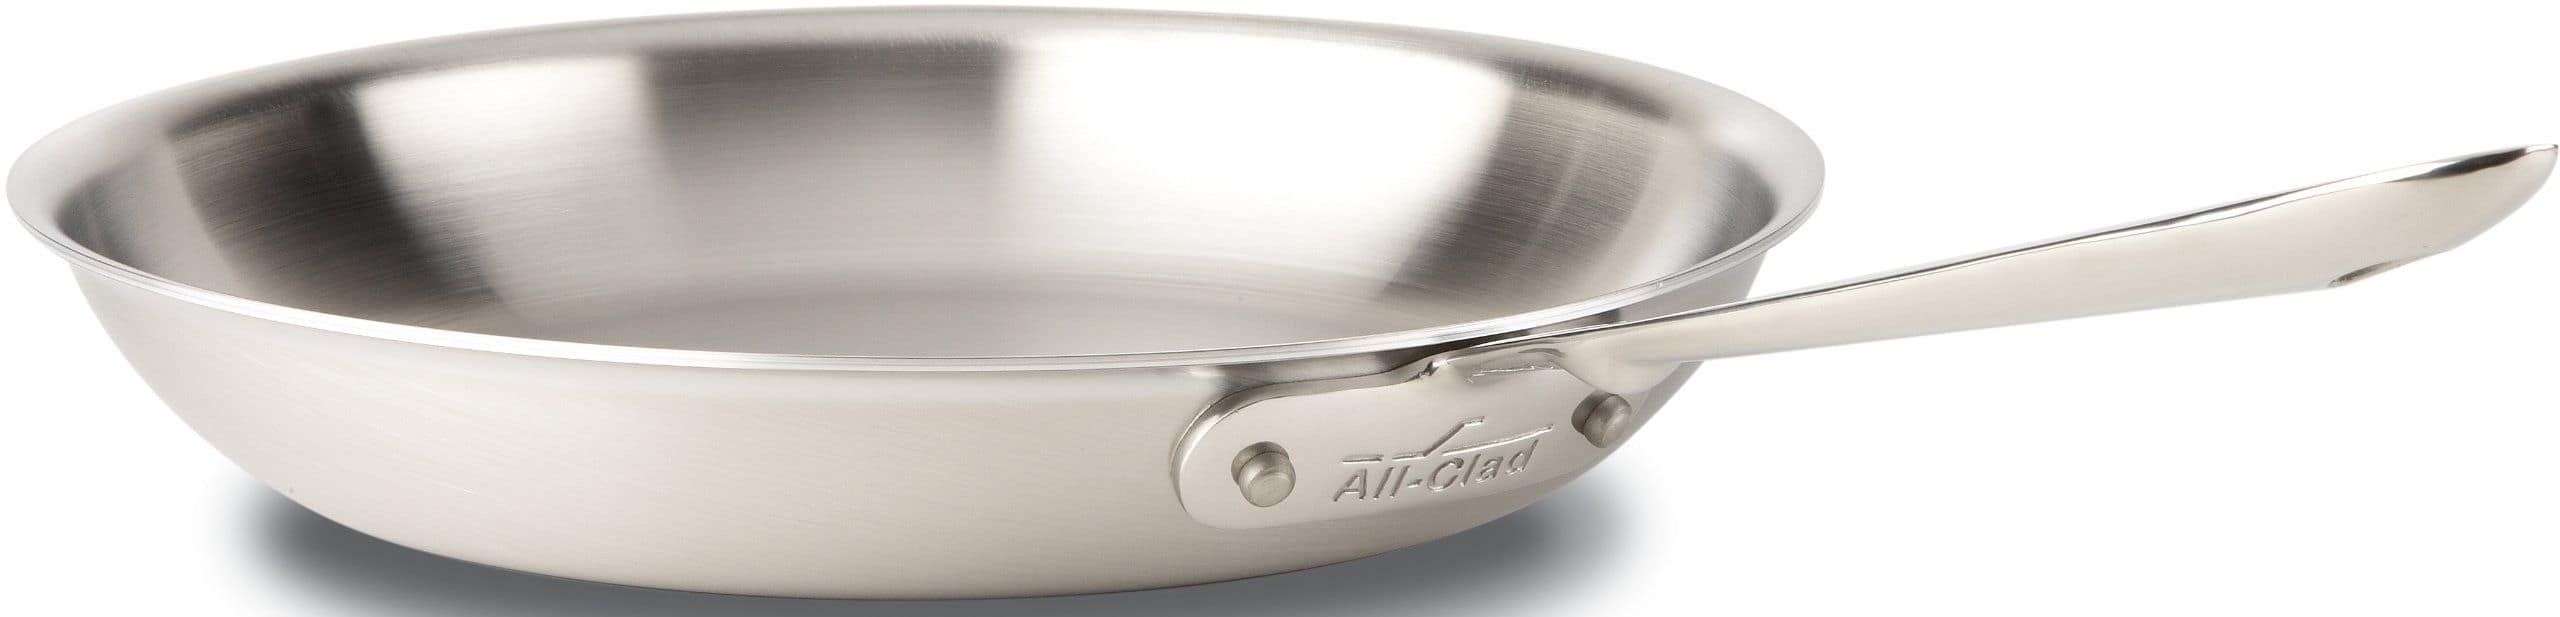 All Clad Factory Seconds Sale Extra 15 Off 12 Quot D5 Fry